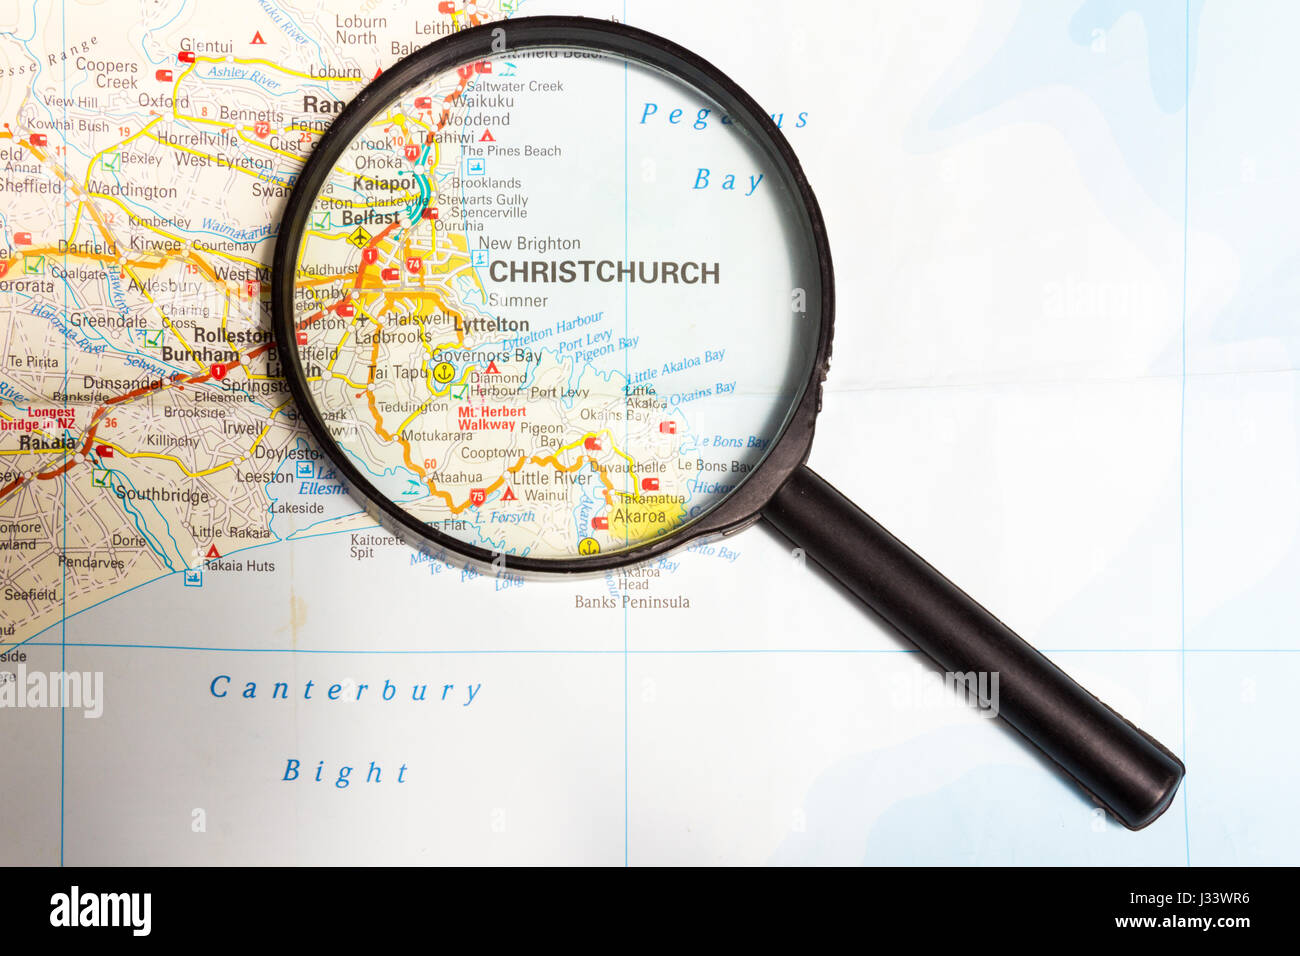 Map Of New Zealand Christchurch.Map Of New Zealand With Magnifying Glass Focusing On Christchurch